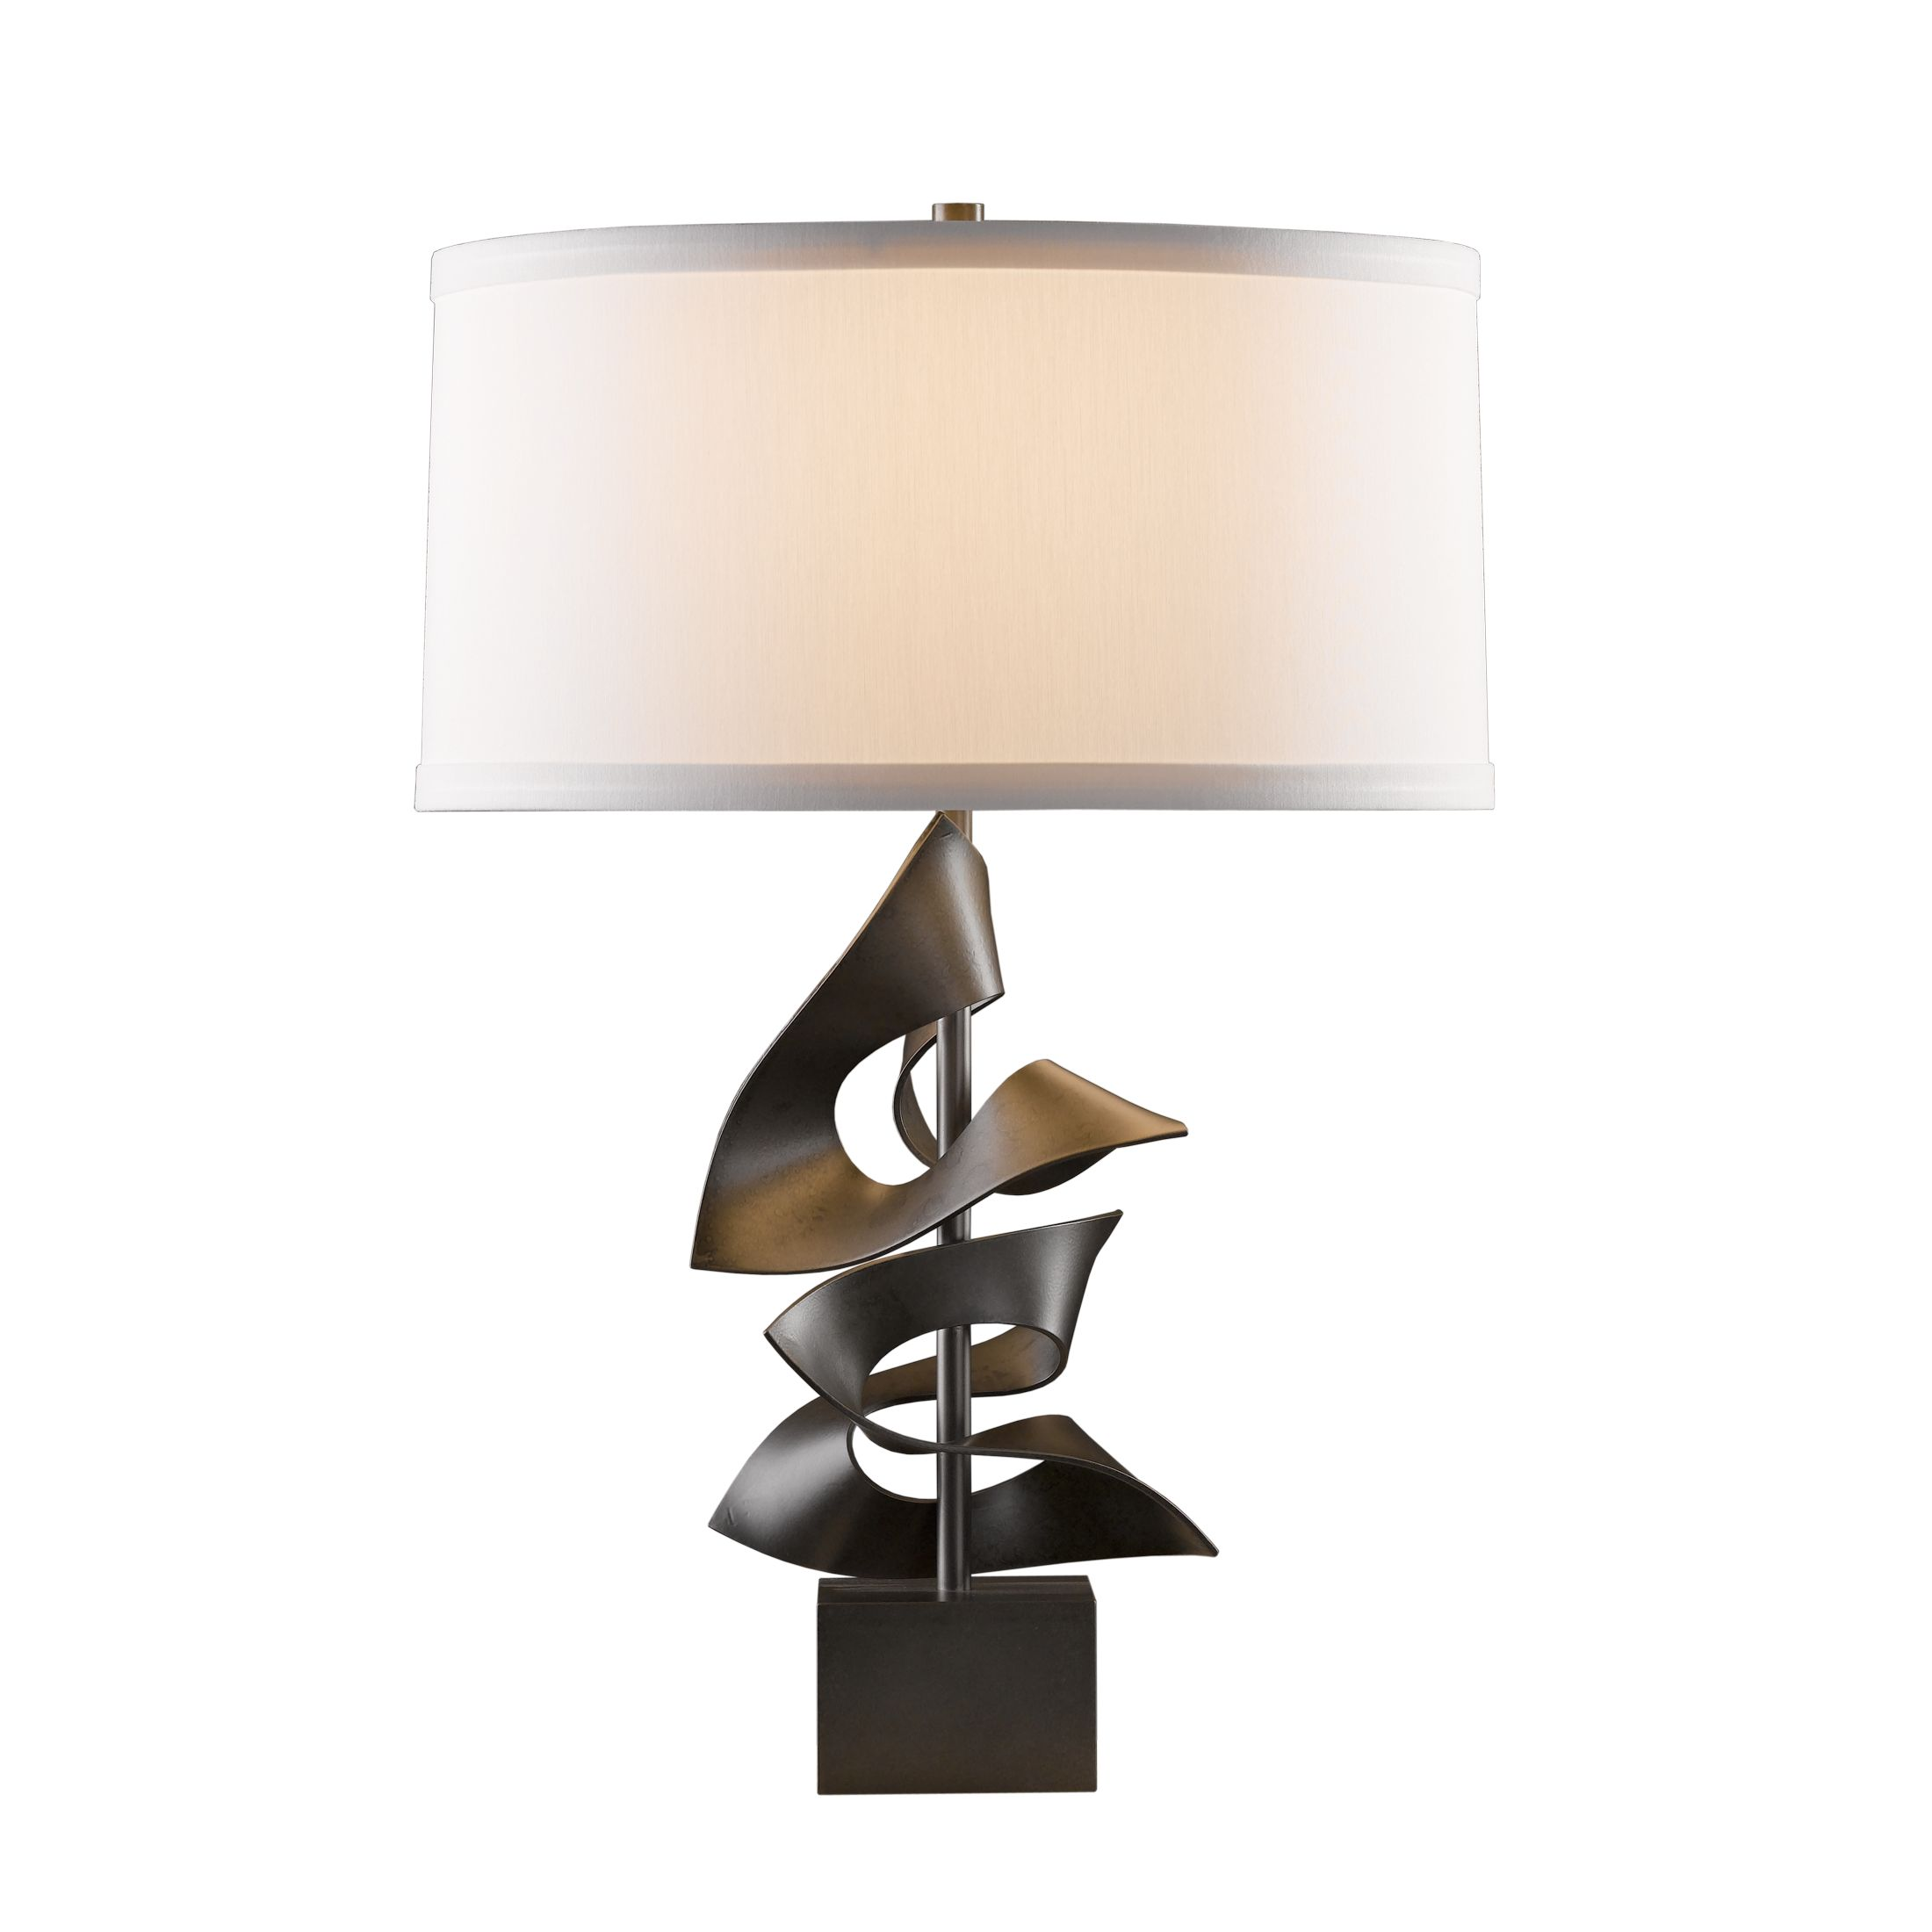 Thumbnail for Gallery Twofold Table Lamp